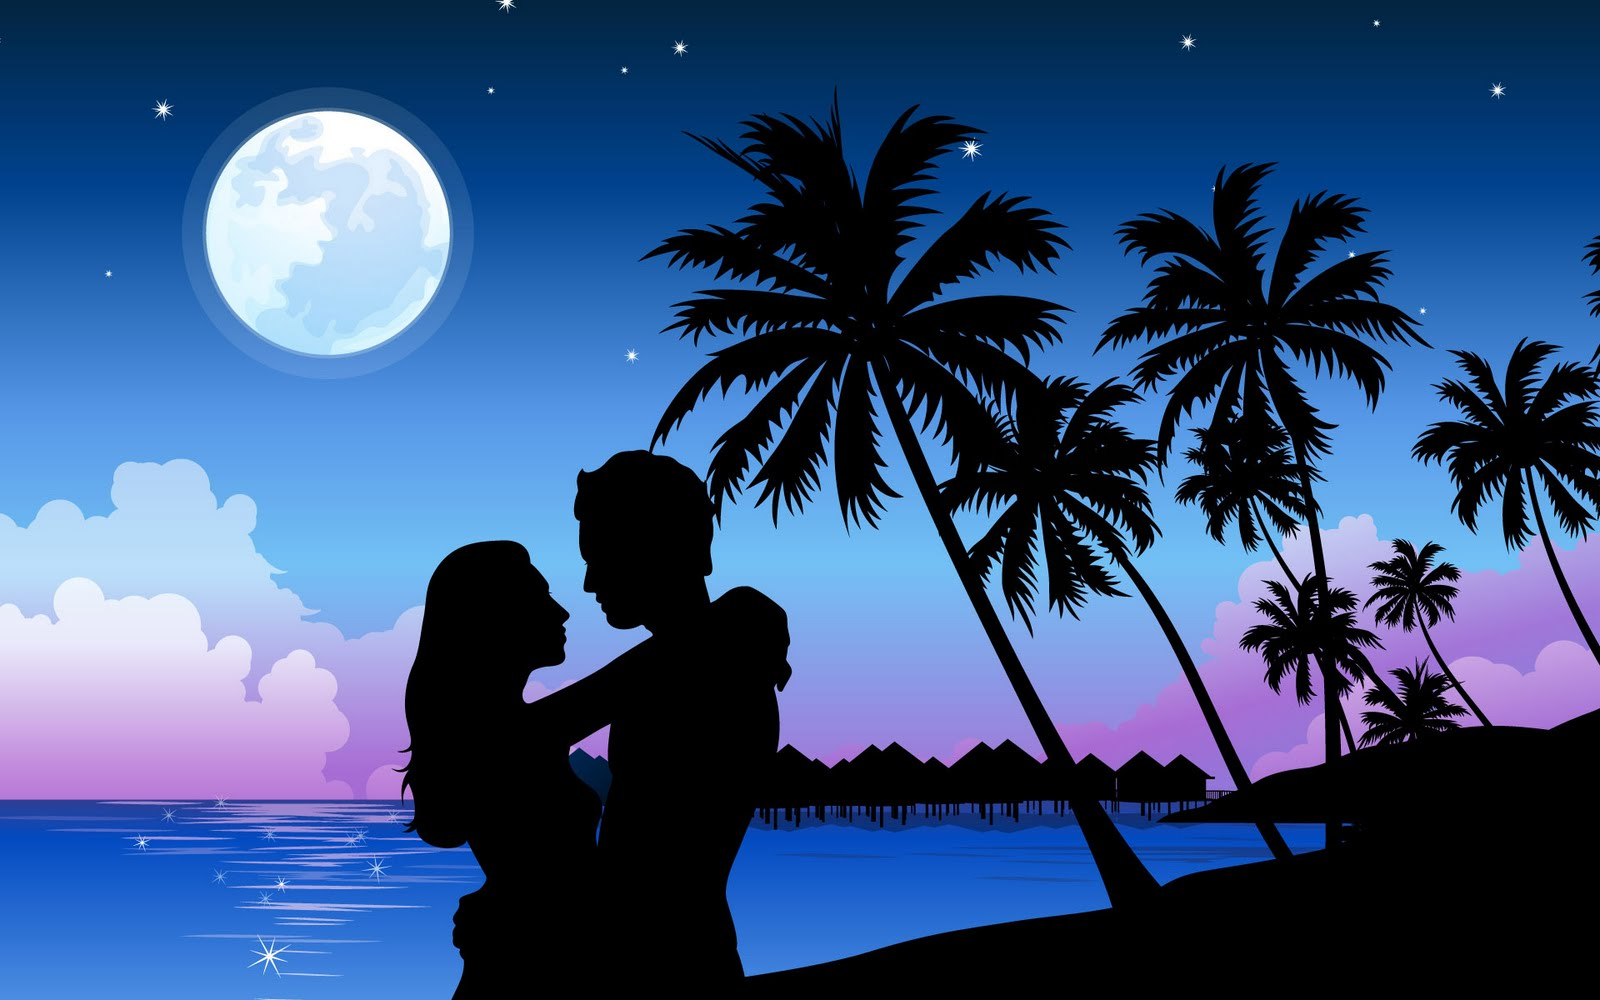 Romantic Wallpaper In The Beach